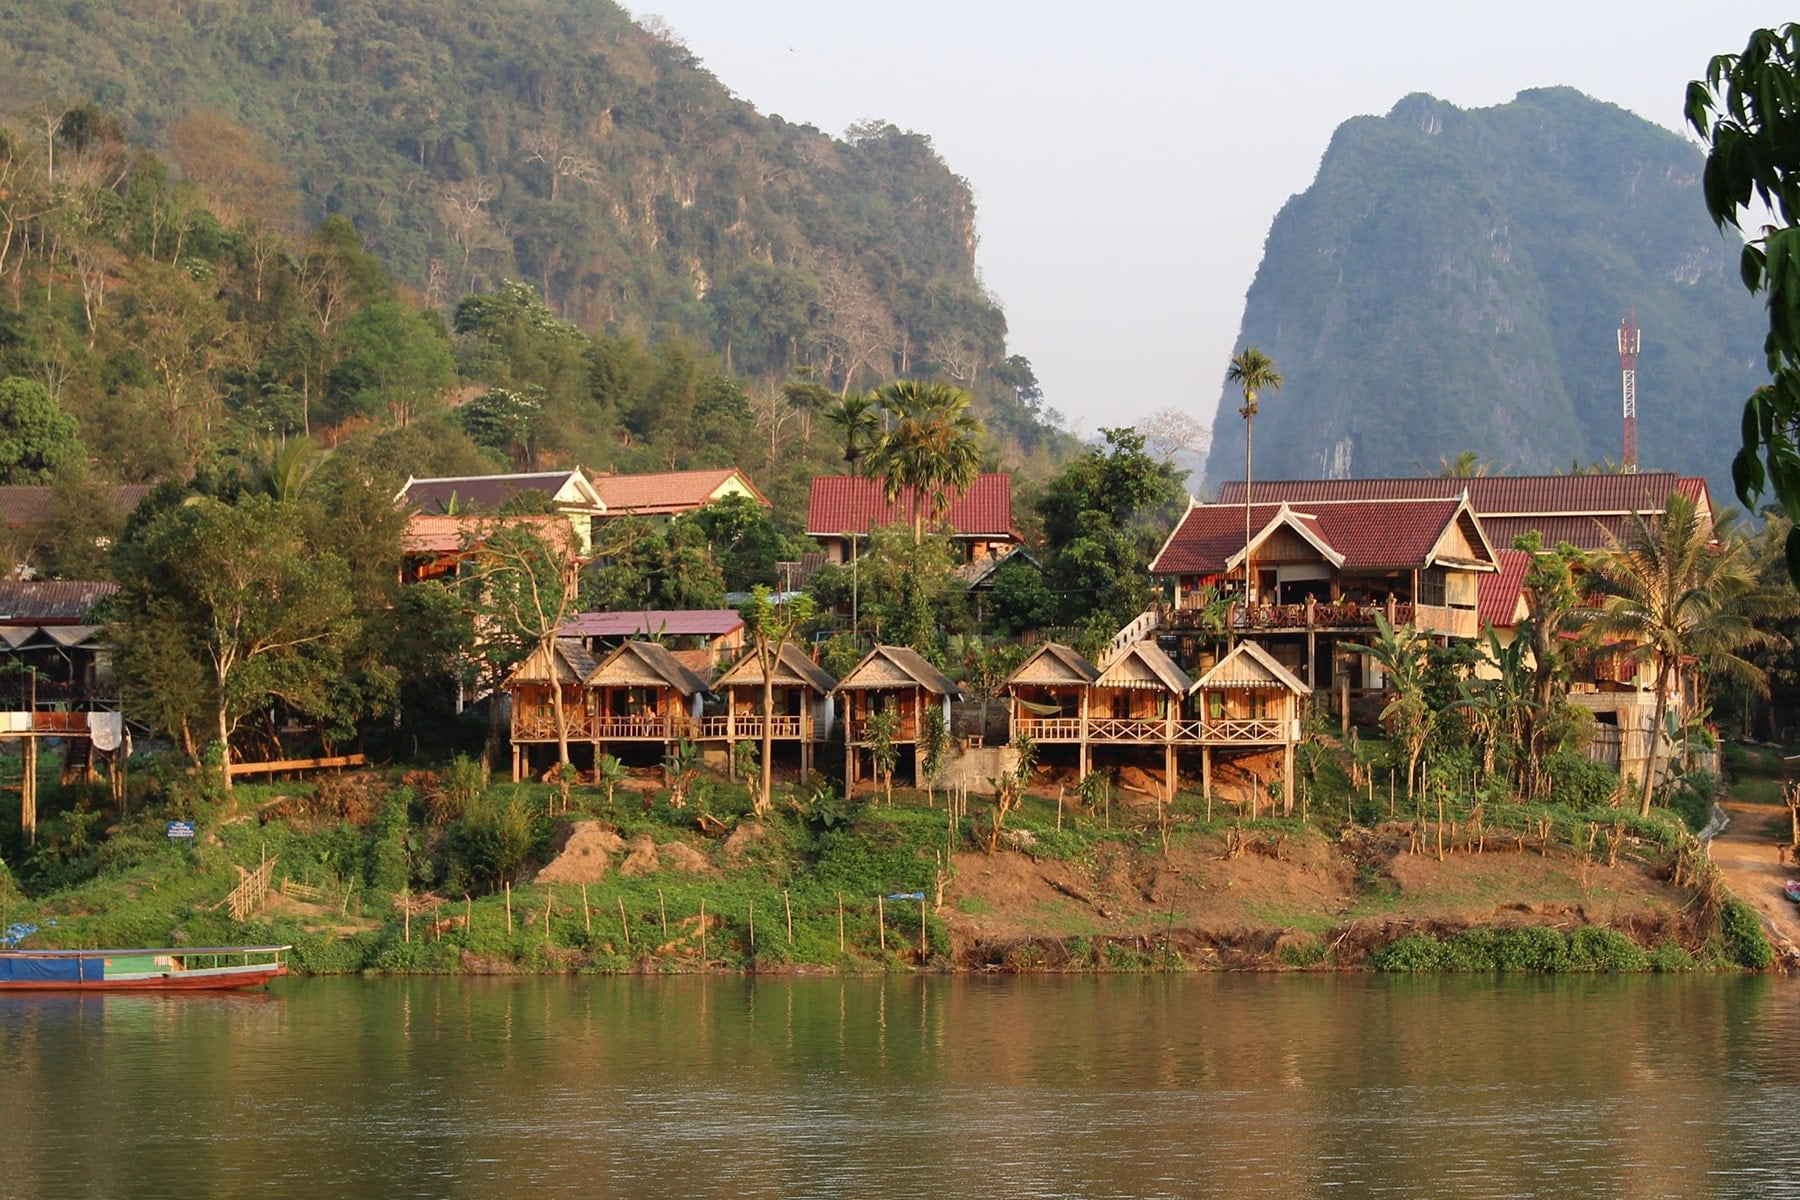 Hotels on the river bank Nong Khiaw, Laos